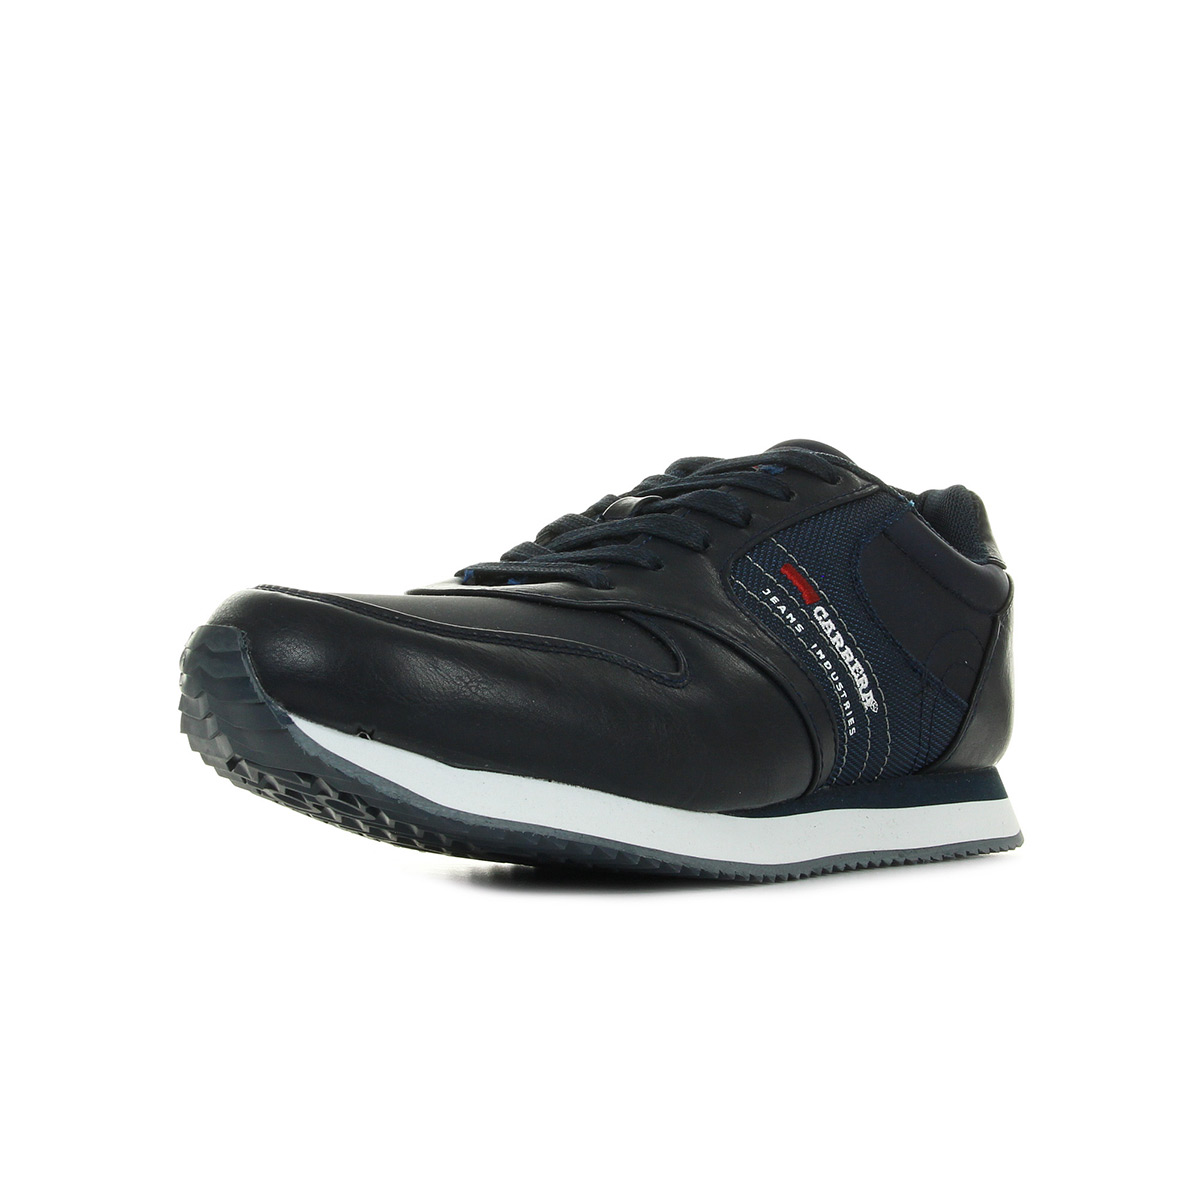 Chaussures Baskets Carrera Jeans homme Candidate Tex Dk Blue taille Bleu marine